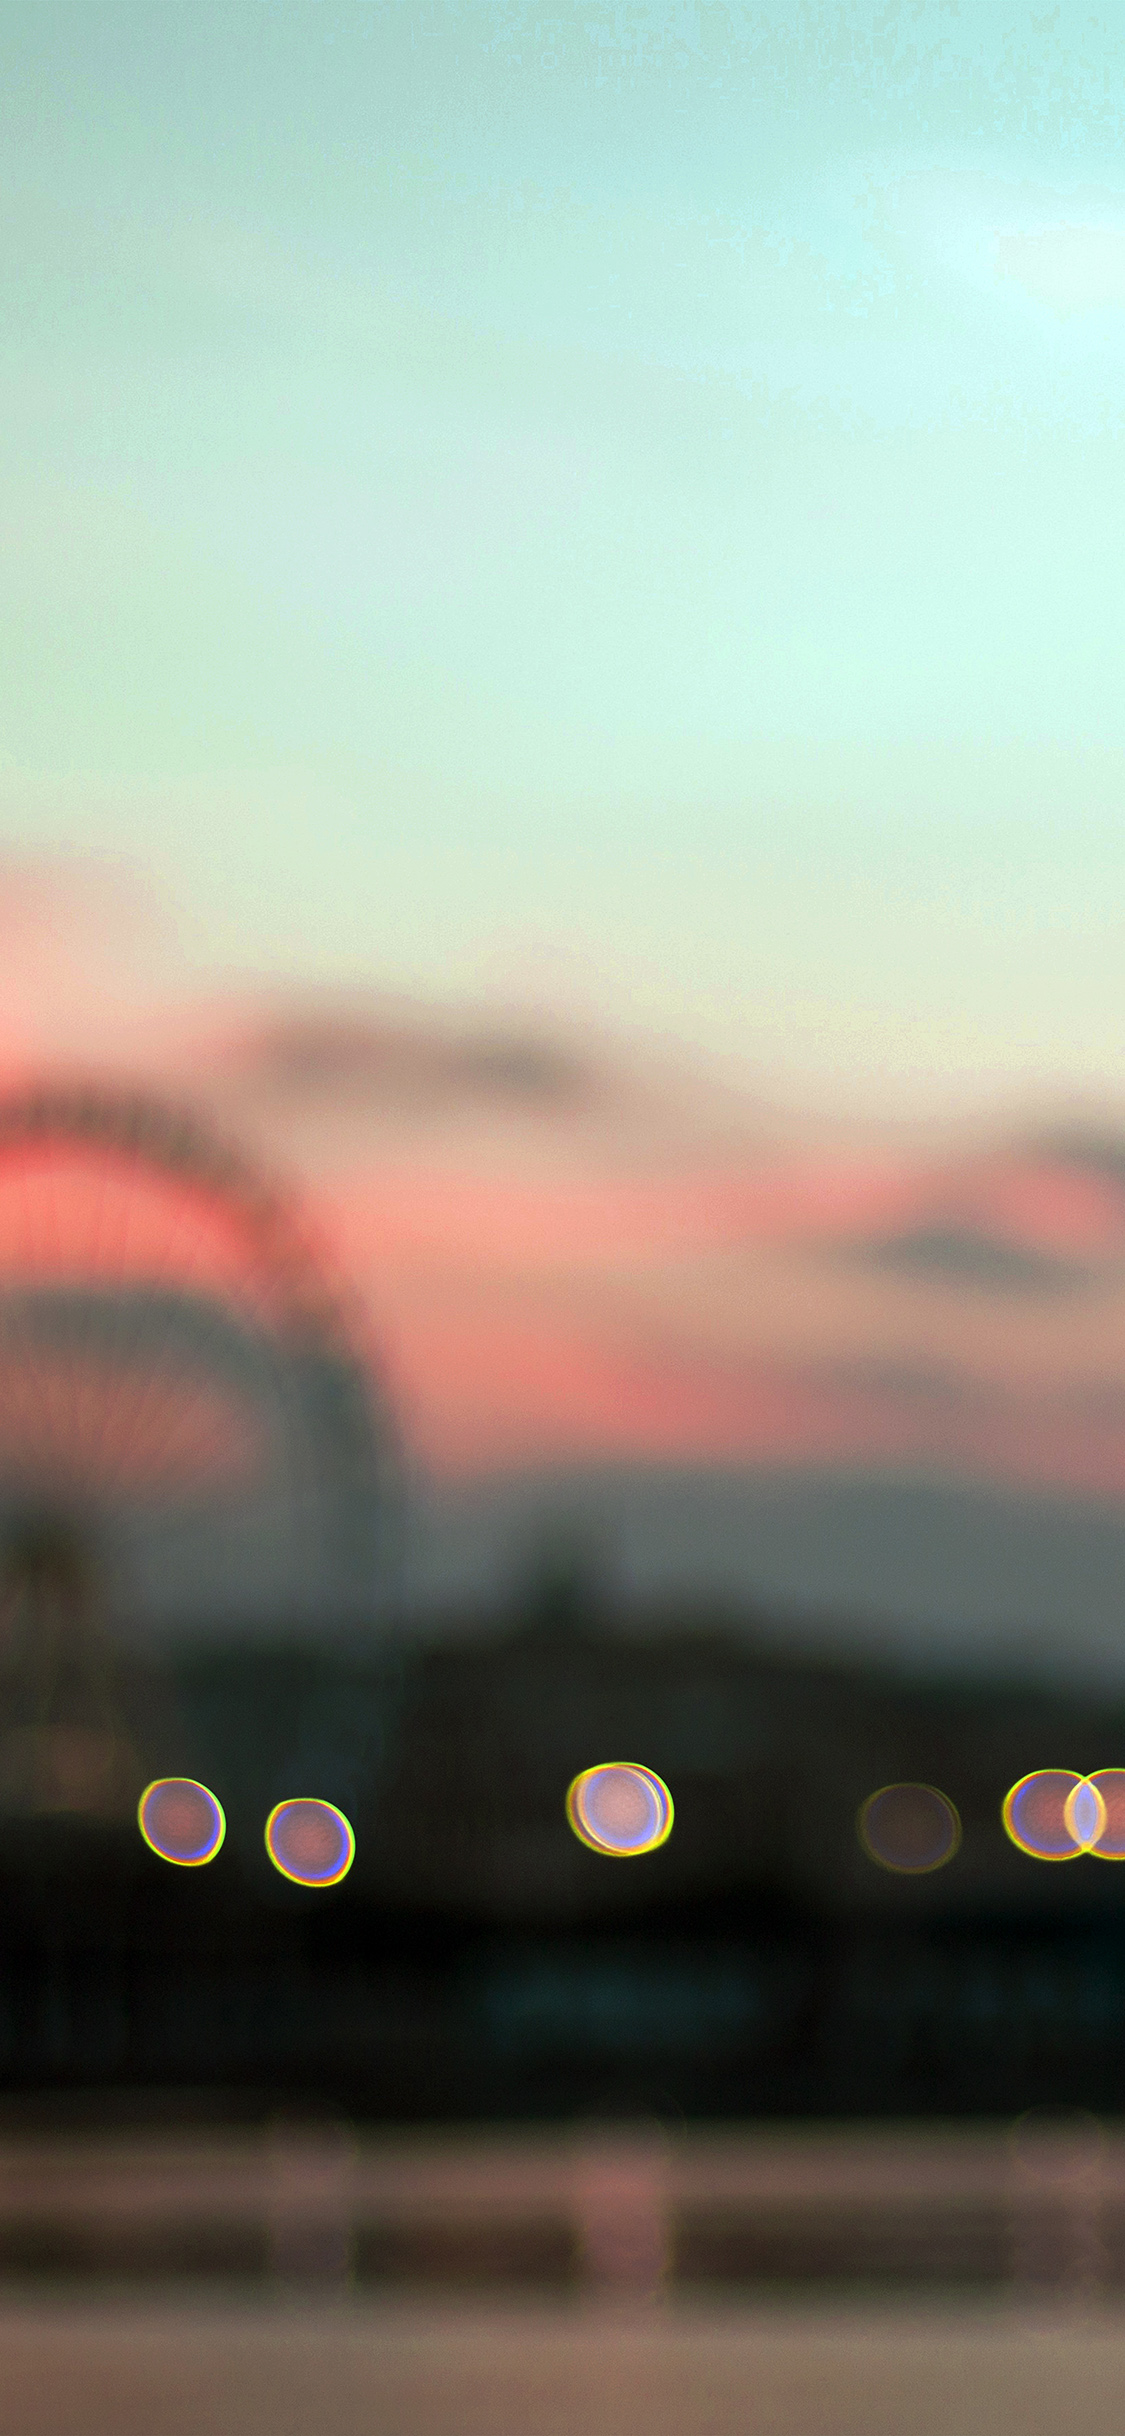 iPhonexpapers.com-Apple-iPhone-wallpaper-nk55-bokeh-circle-sunset-afternoon-london-red